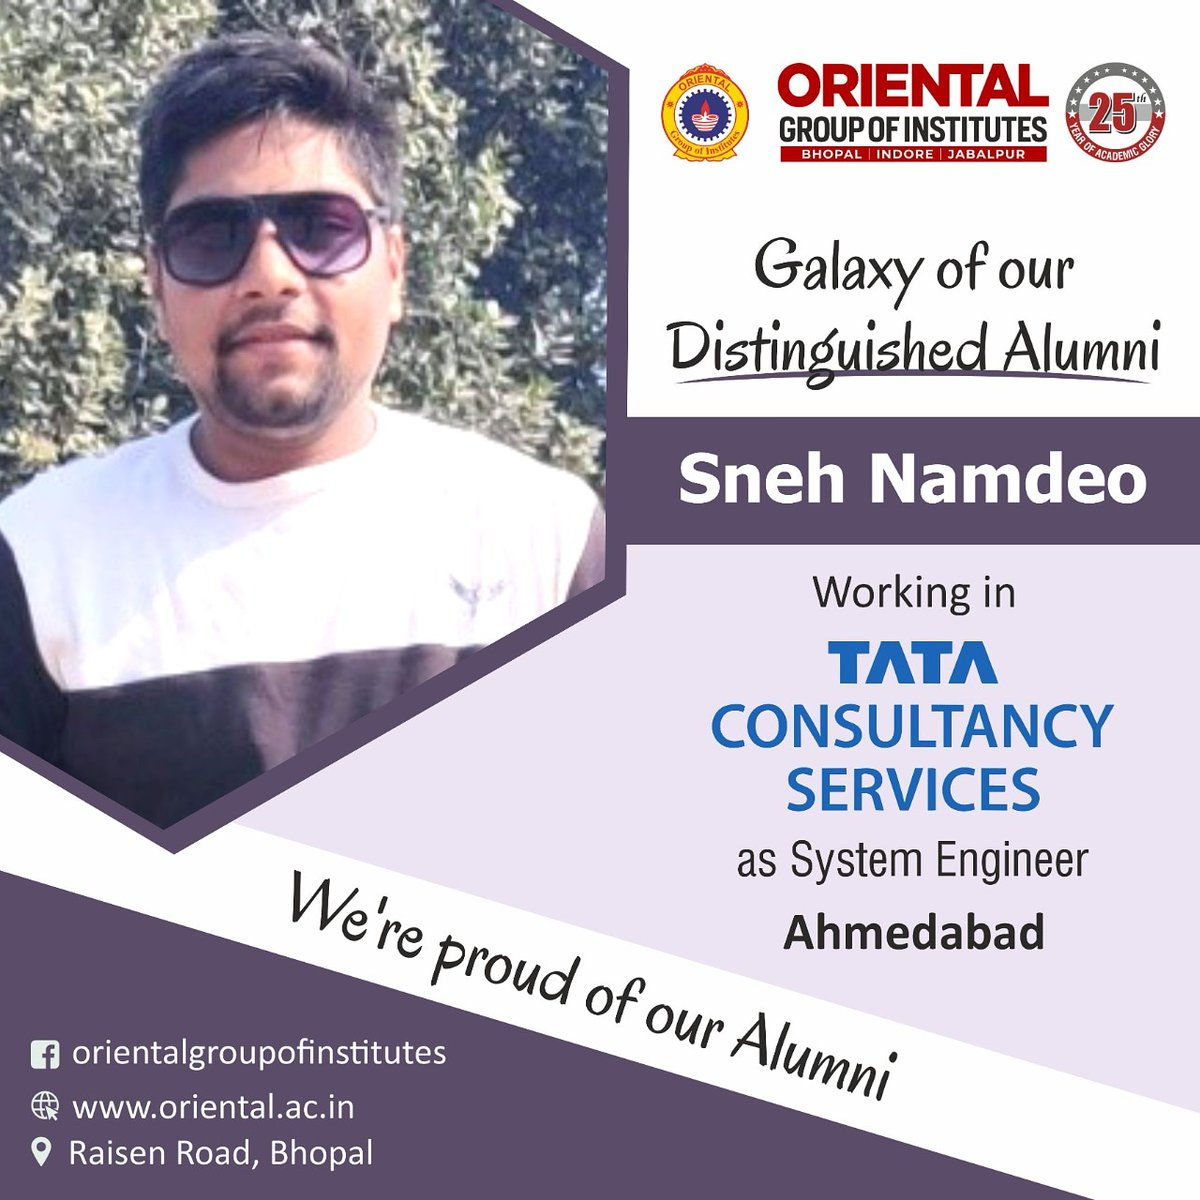 You made us feel #Proud!!! Sneh Namdeo an #alumnus of #OGI working in #TCS as #System Engineer https://t.co/IiGRALm1GS